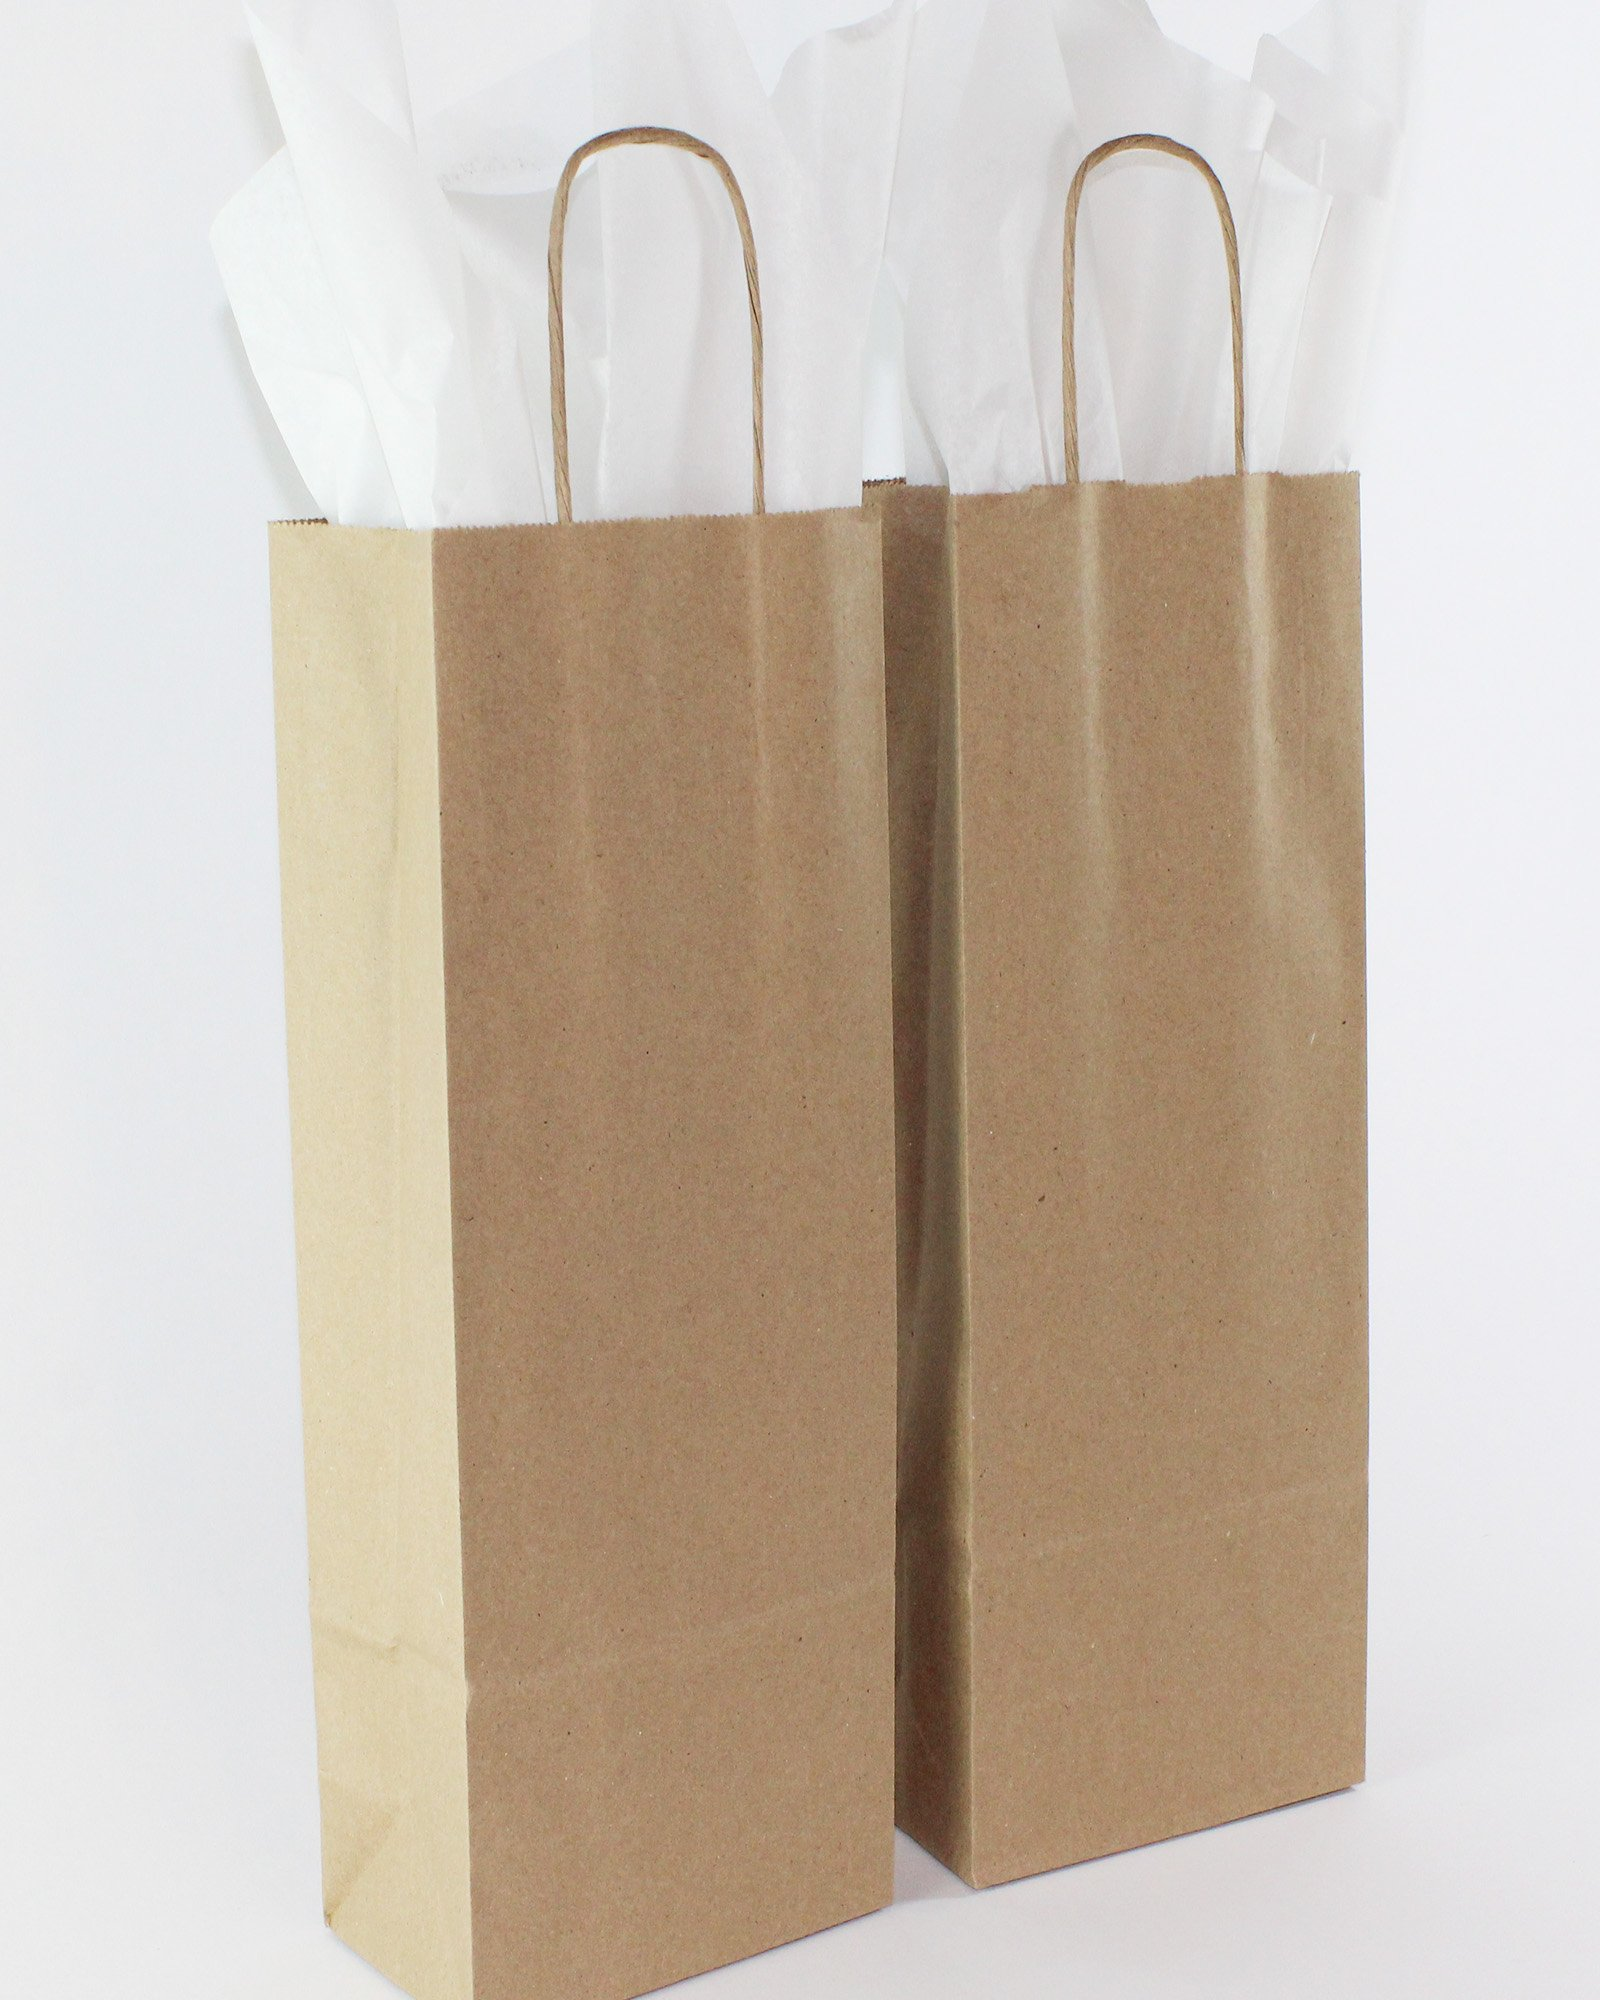 Saybrook Products Kraft Paper Wine Bags Handles & Tissue Paper, Bulk 50 Pack. Premium Quality, 100% Recycled, Eco-Friendly, Reusable. Made in USA.5½ x 3¼ x13 inches. Brown